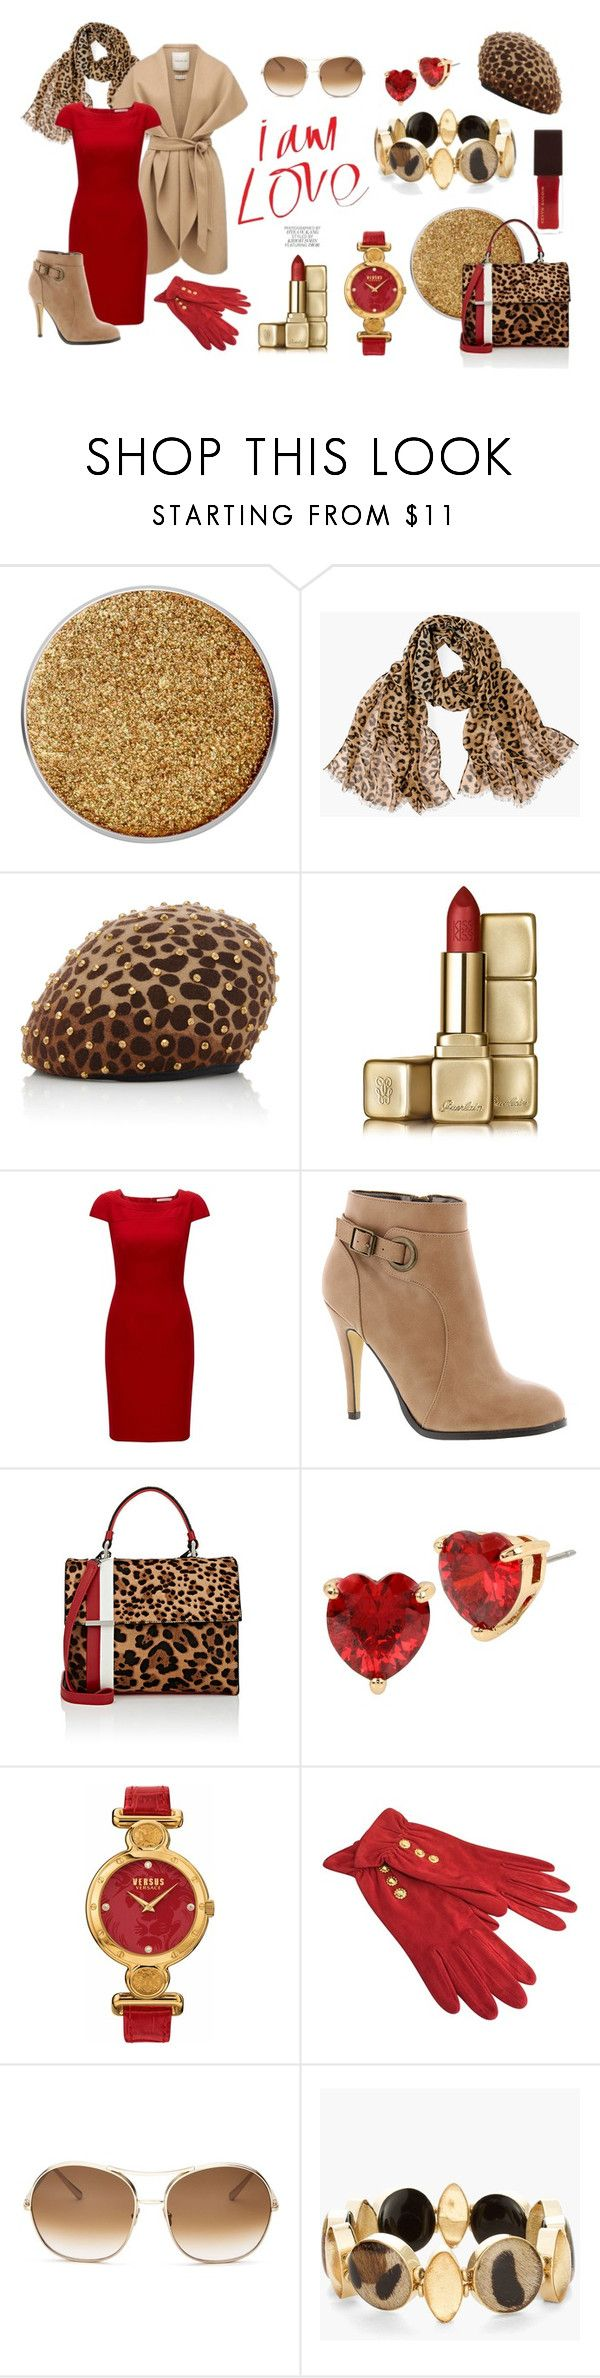 """red panthere"" by celine-diaz-1 on Polyvore featuring mode, Chico's, Yestadt Millinery, Guerlain, Forever New, Michael Antonio, Tomasini, Betsey Johnson, Versus et Emanuel Ungaro"